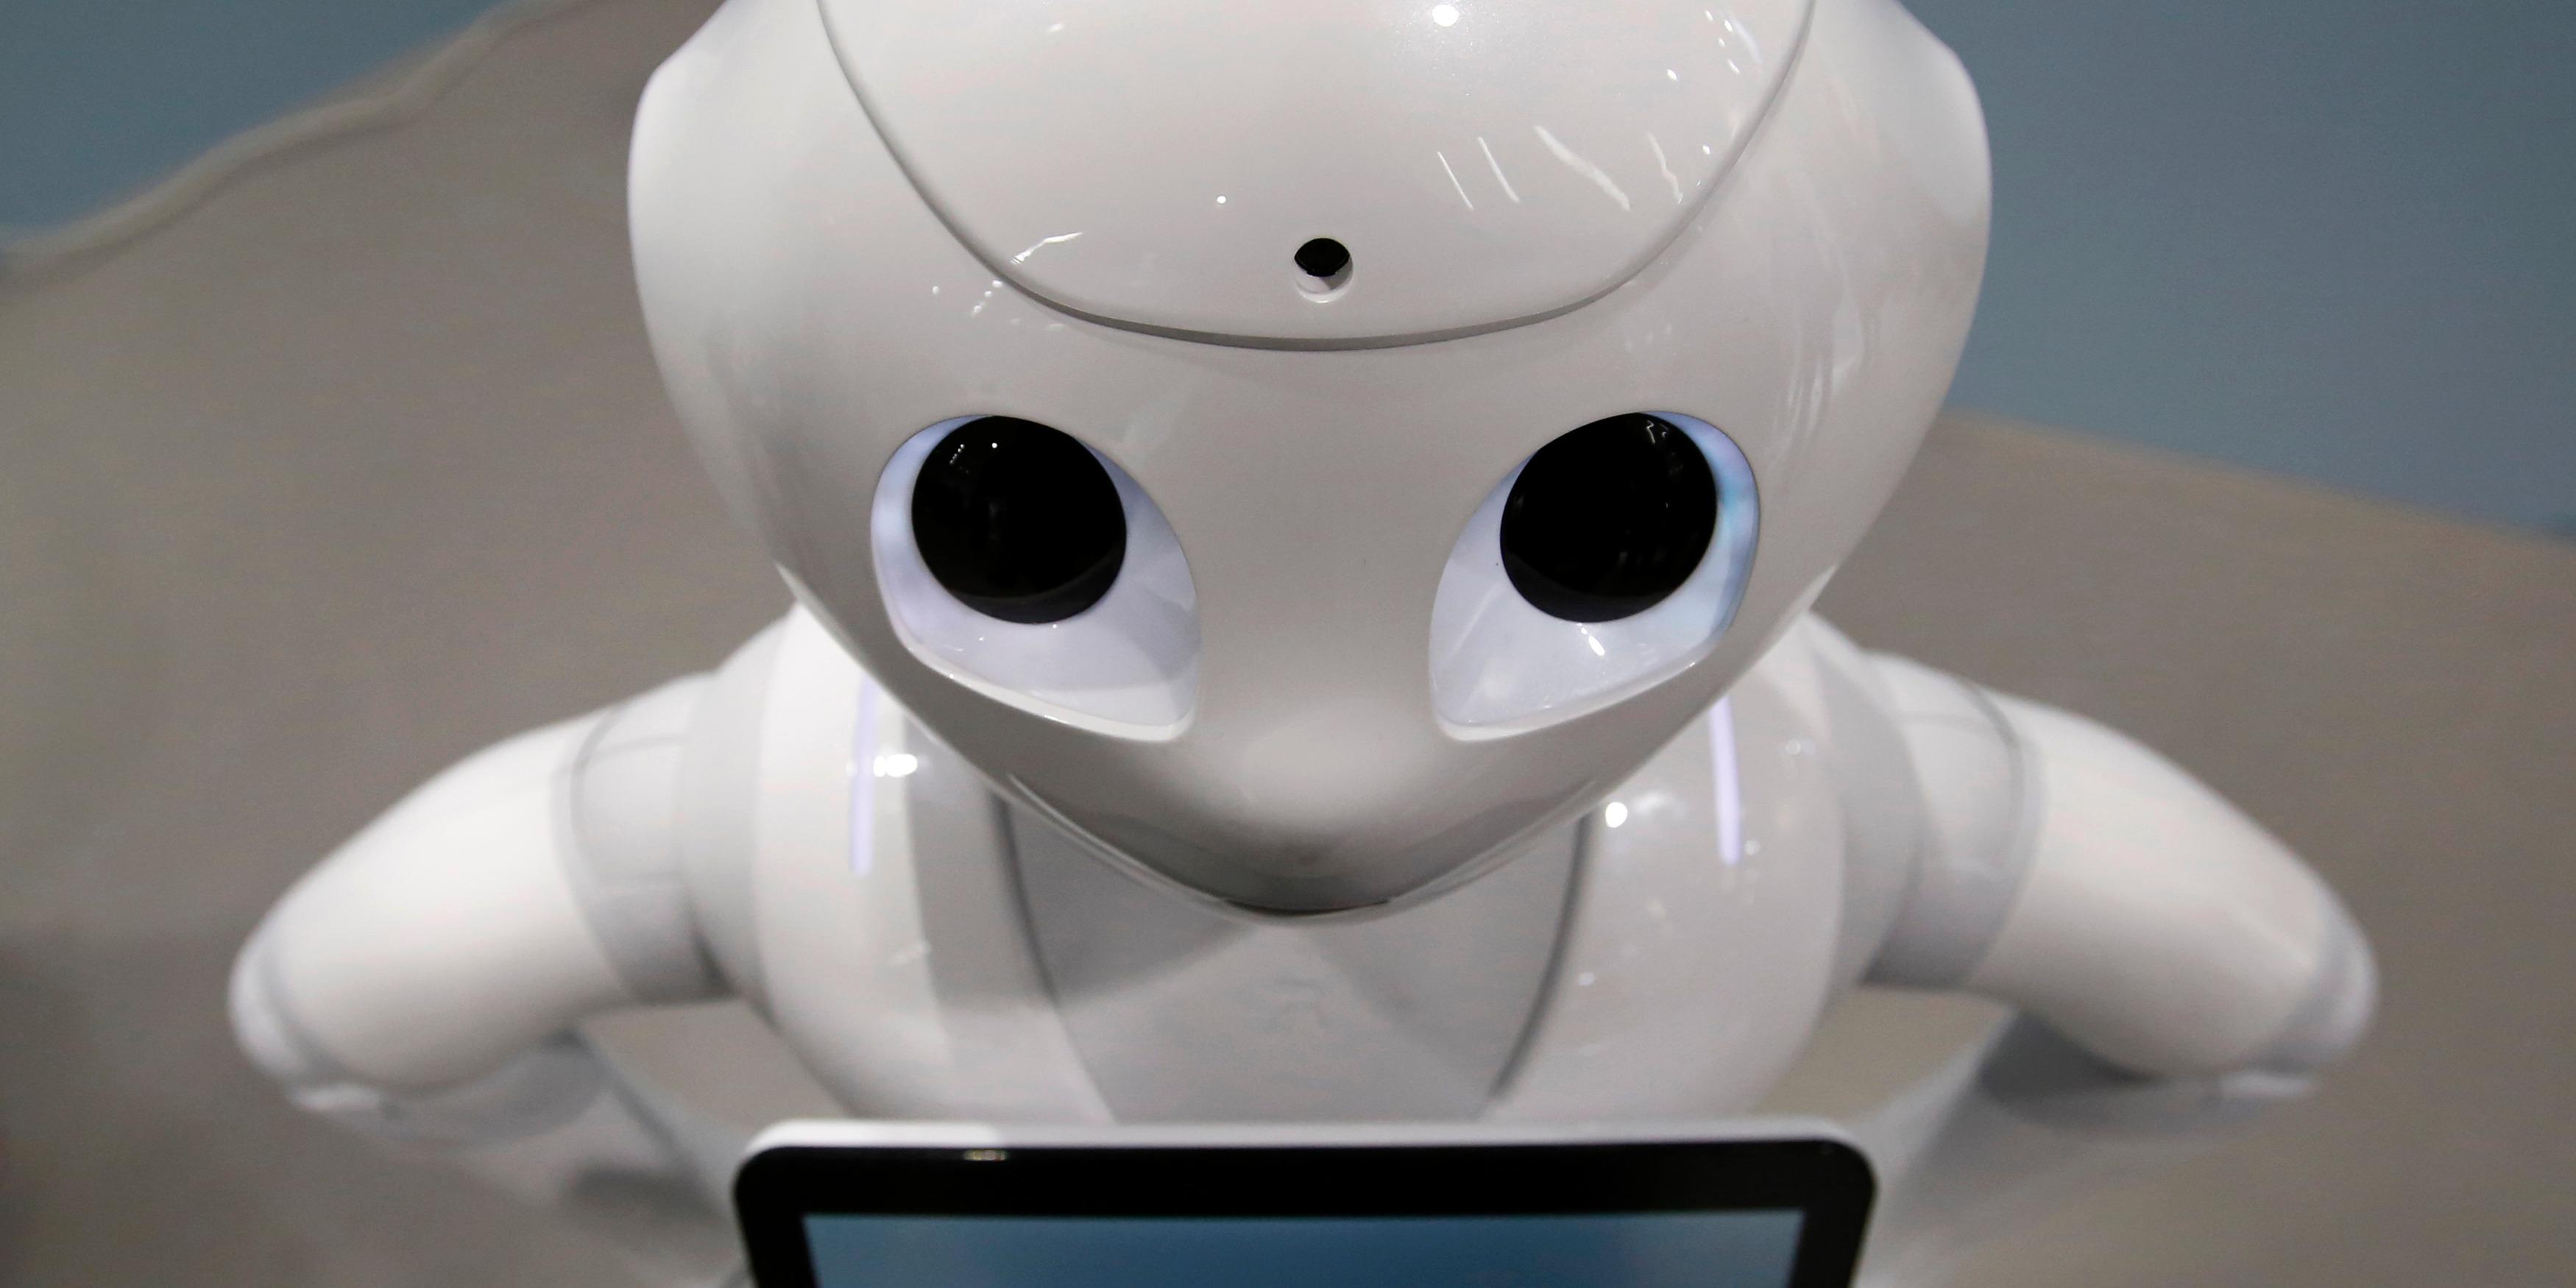 Thank God someone is now teaching robots to disobey human orders